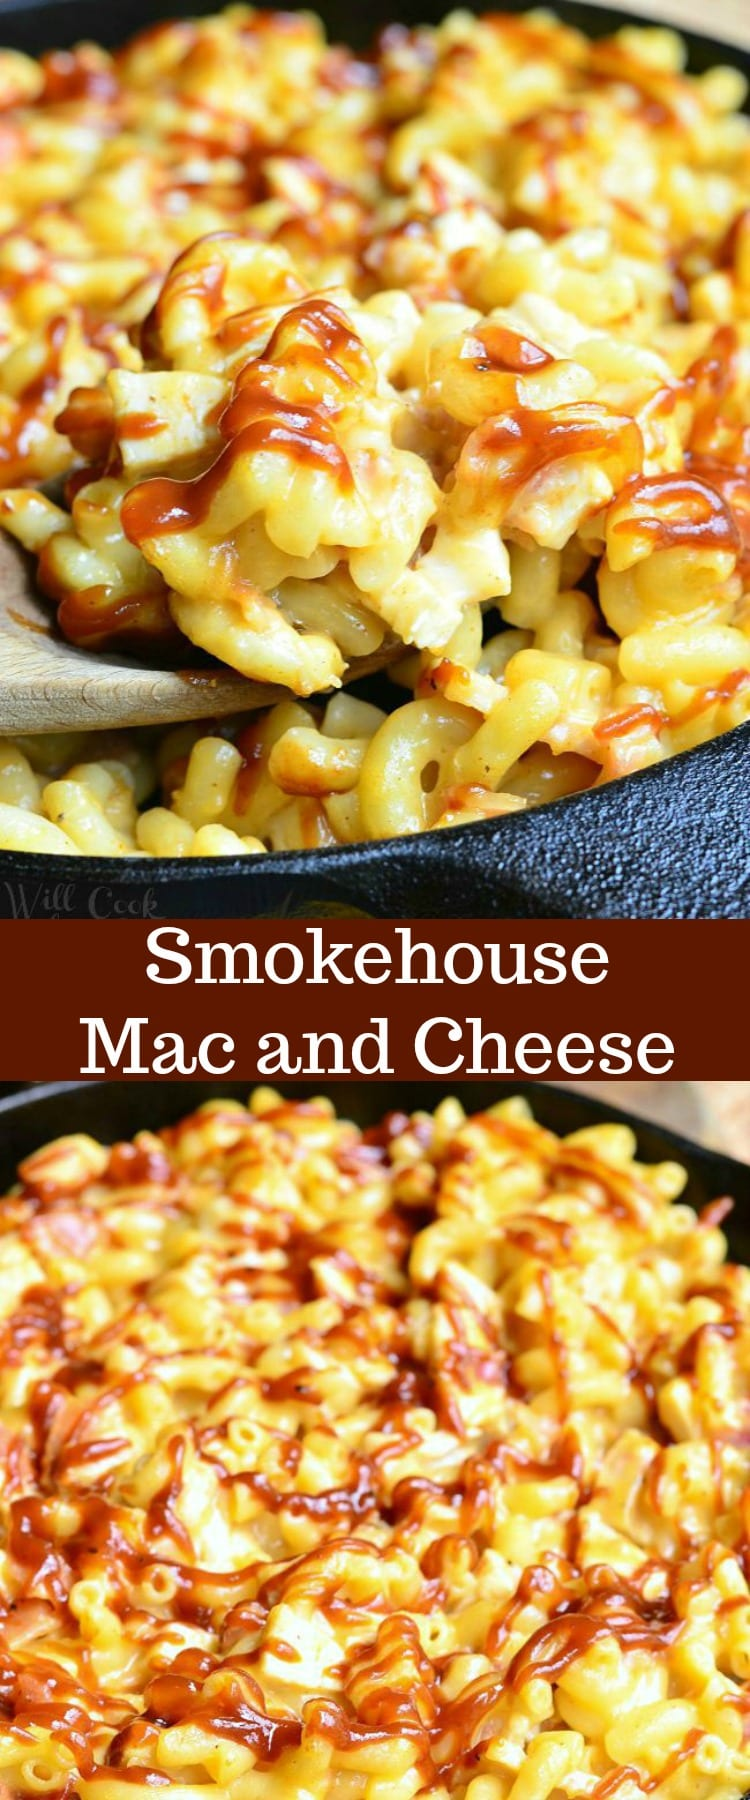 Two photos: the top of a wooden spoon is dipped into the skillet of Smokehouse Mac and Cheese. The bottom photo is a black skillet full of Smokehouse Mac and Cheese. In both photos, there are noodles, chicken, bacon and lots of cheese. The top of the Mac and Cheese is drizzled with BBQ sauce.